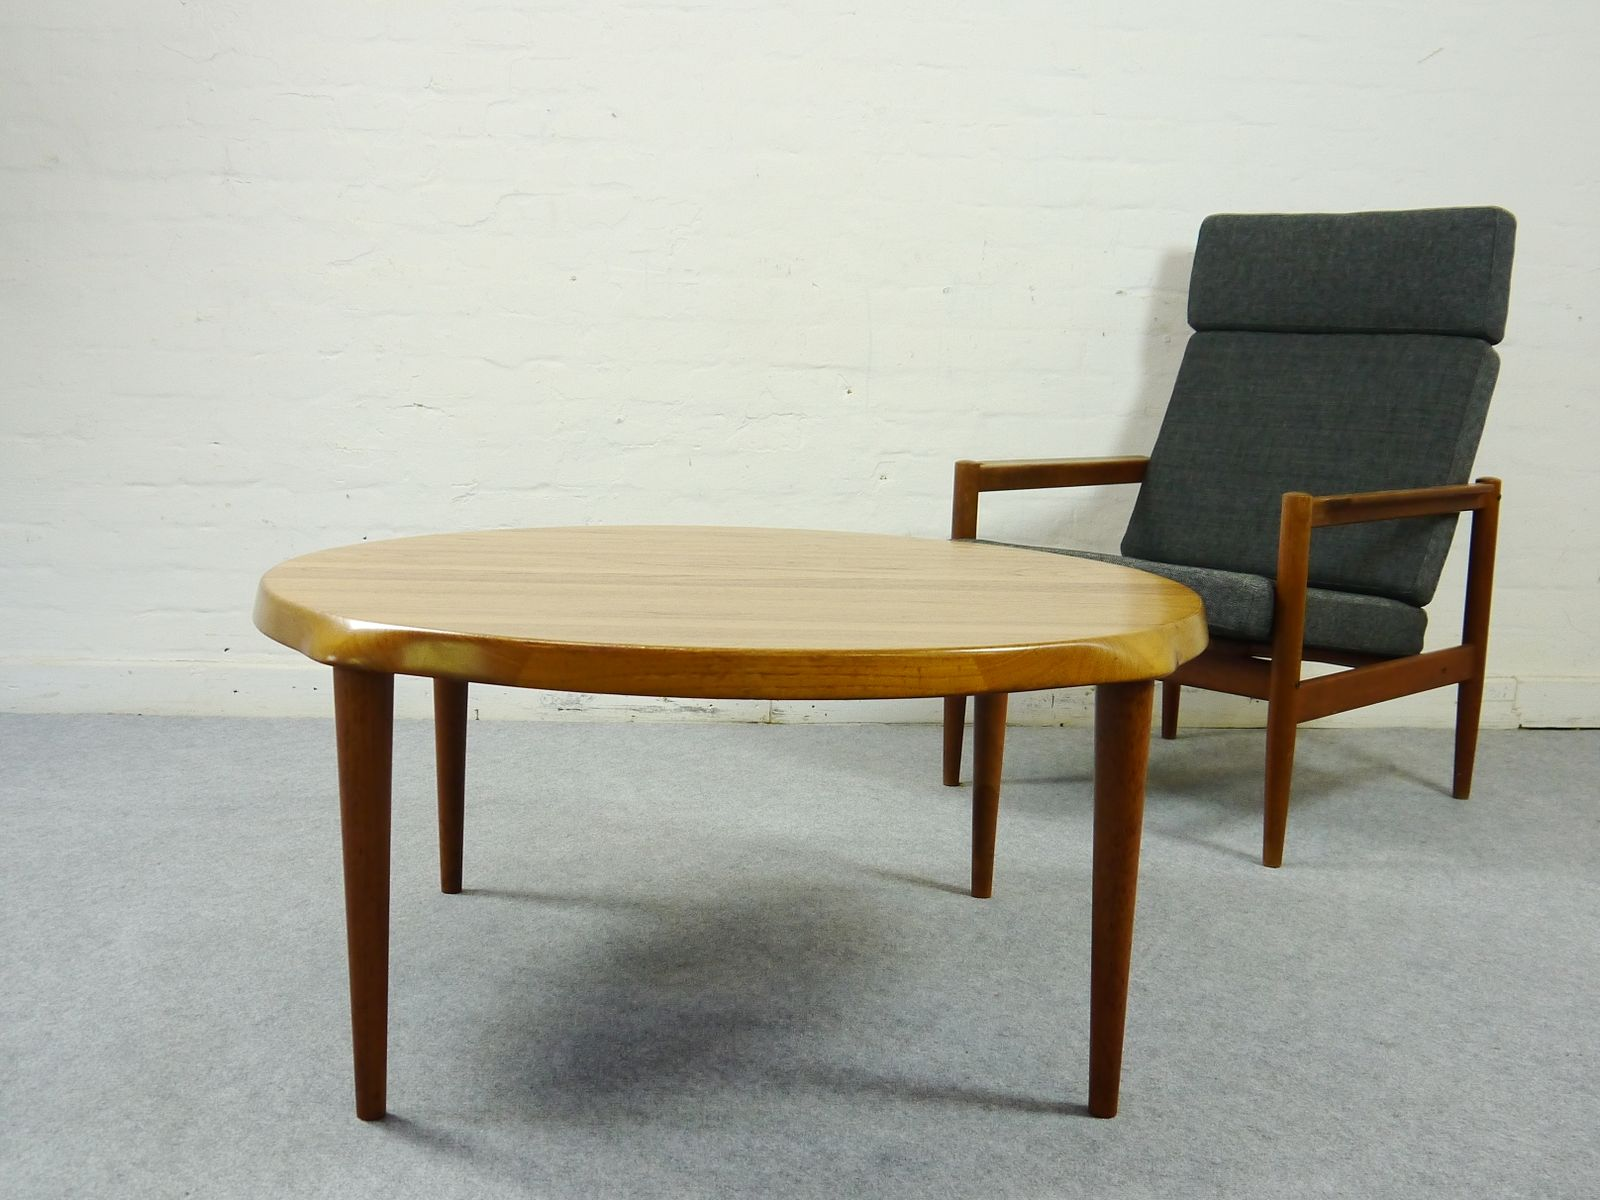 Danish Midcentury Teak Coffee Table By John Bone For Mikael Laursen For Sale At Pamono